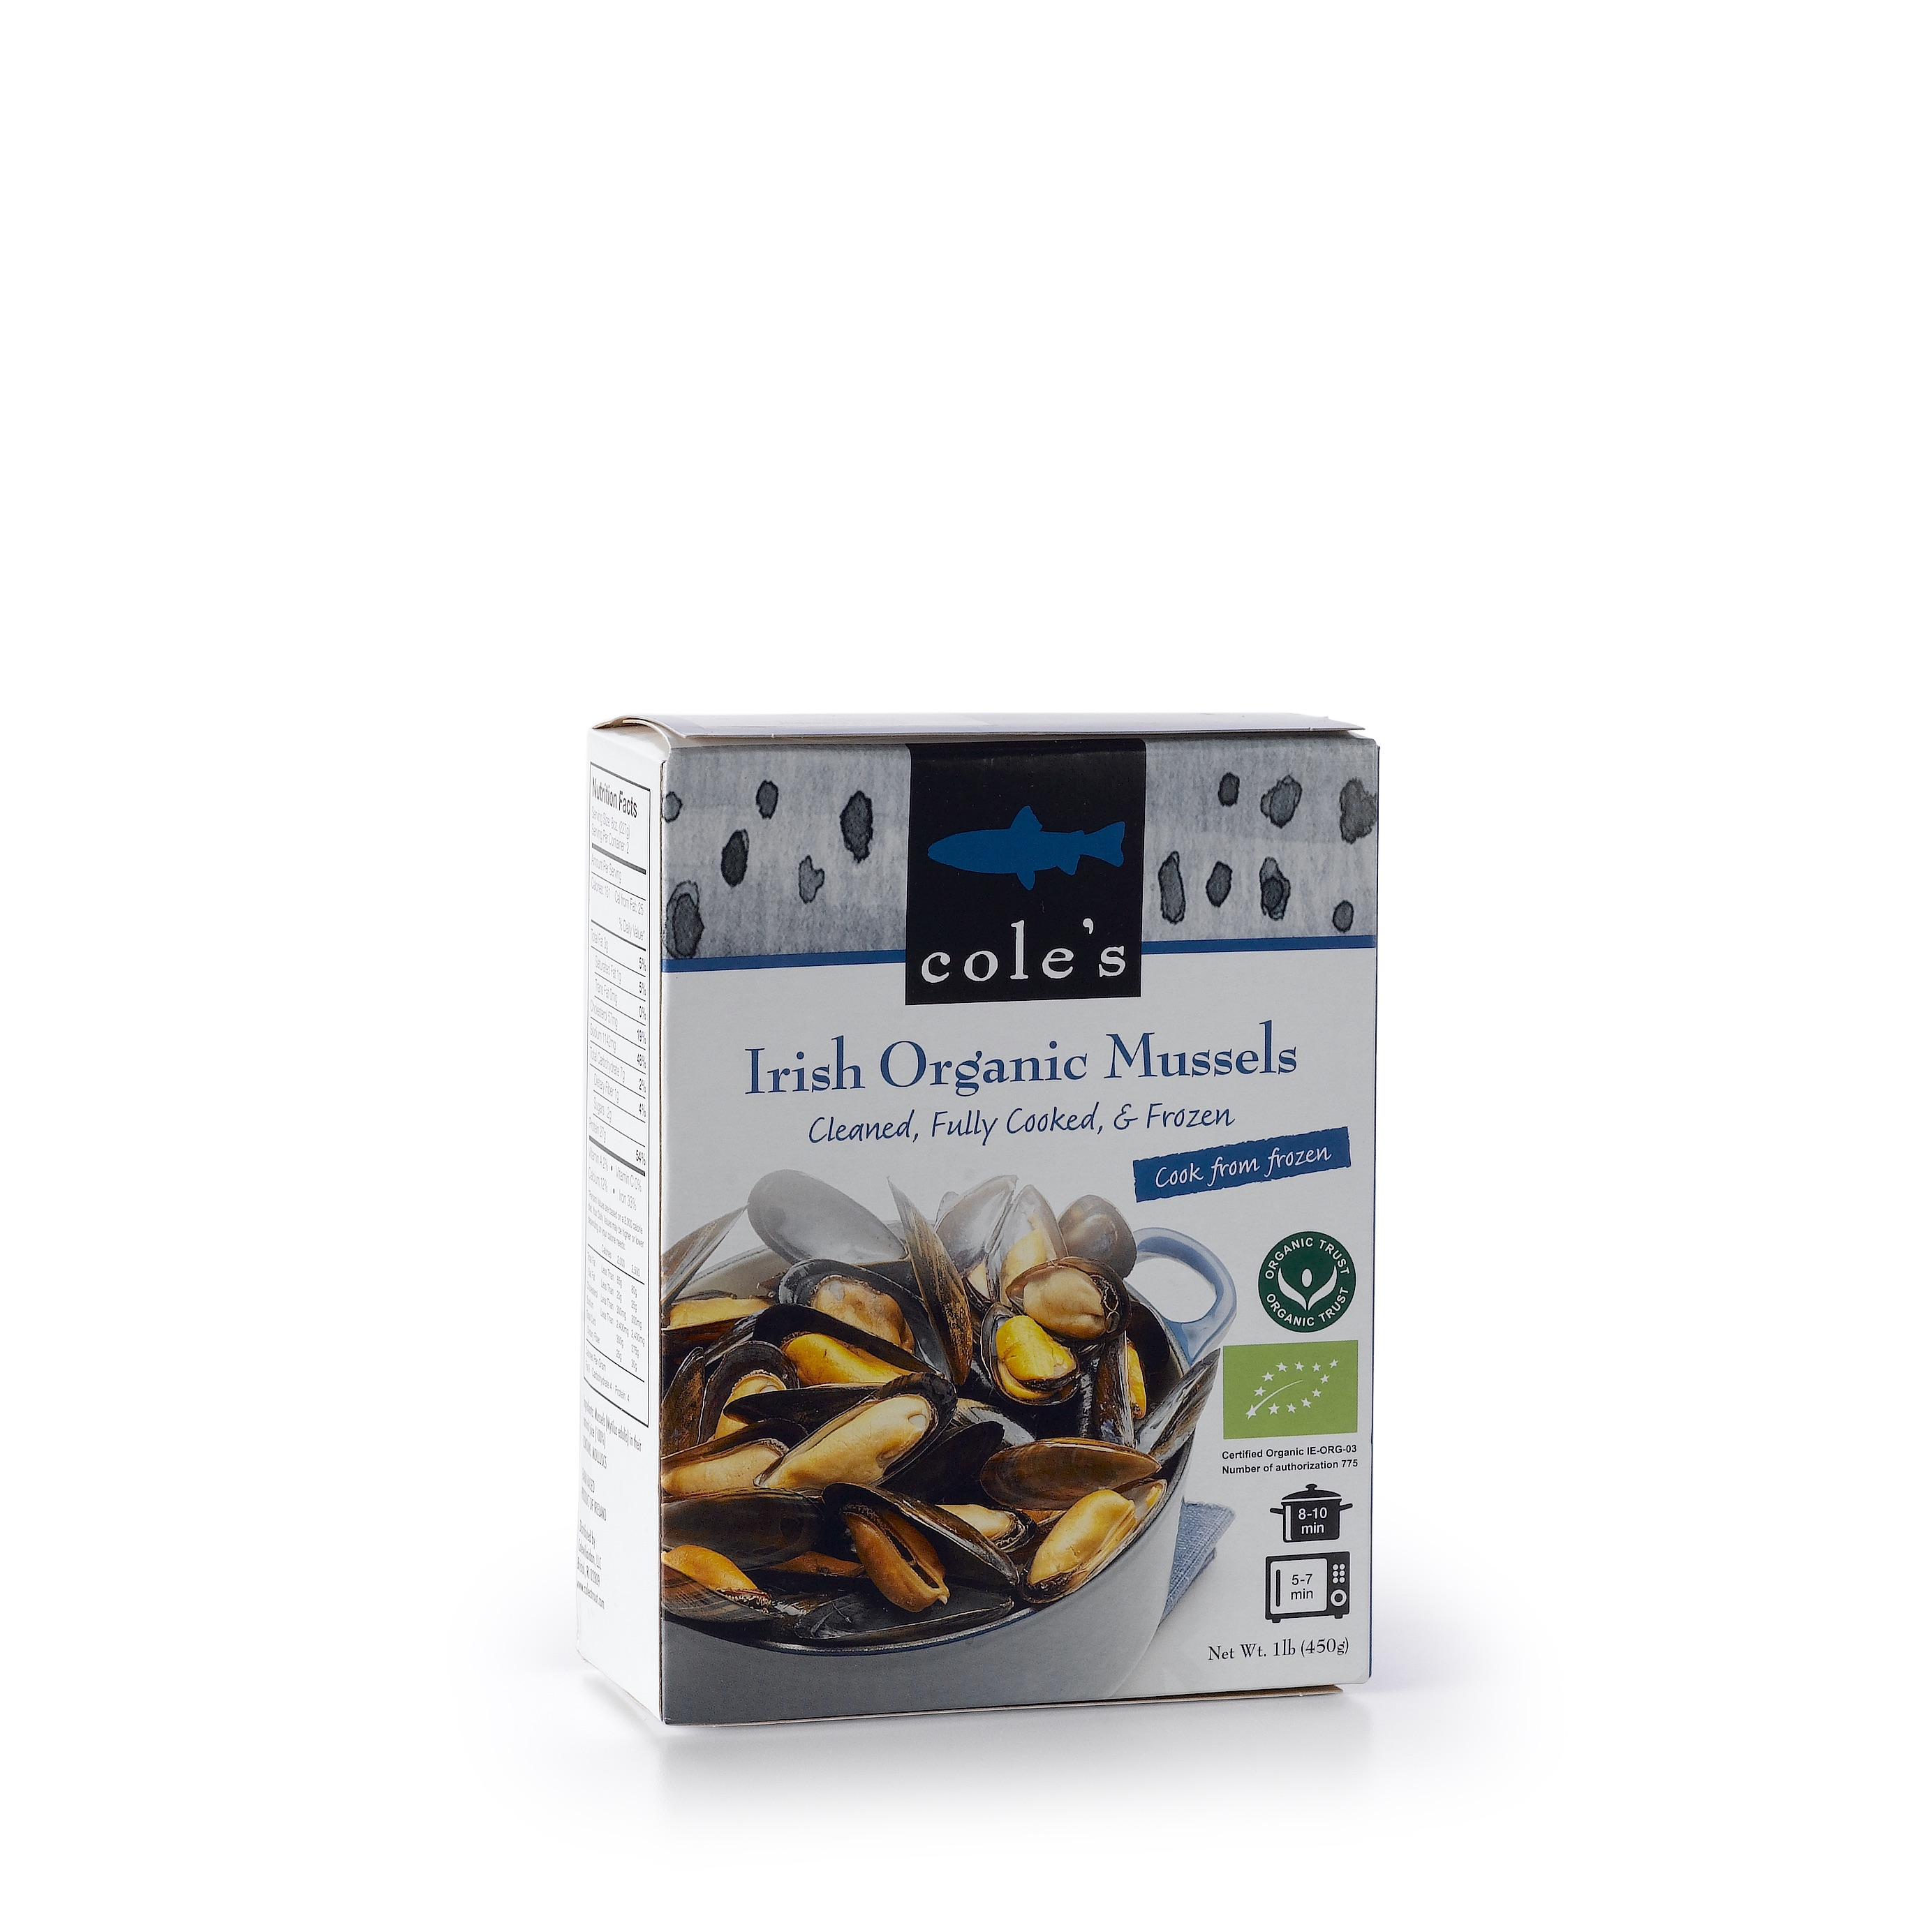 Coles Giftcard Balance Coles Seafood Coles Organic Mussels Walmart